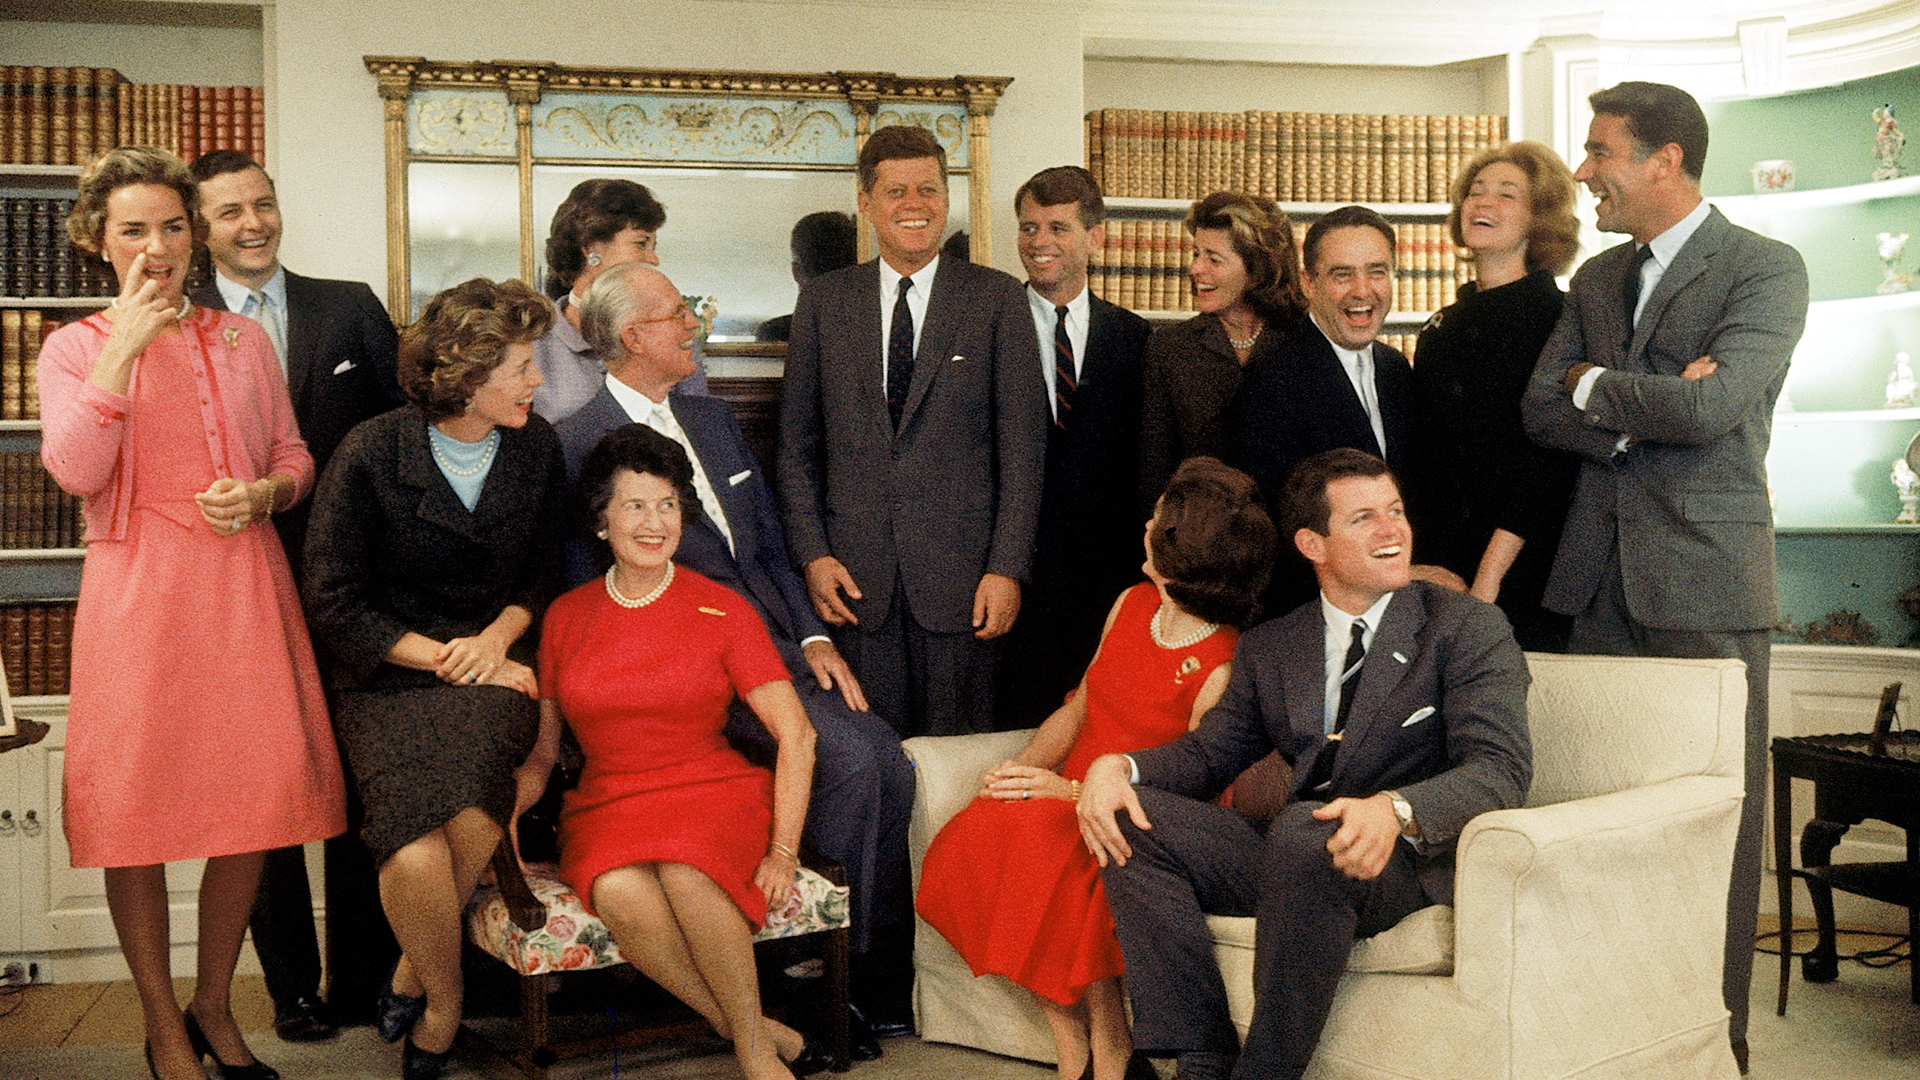 The Racism that Existed and Persisted Within the Kennedy Family ...